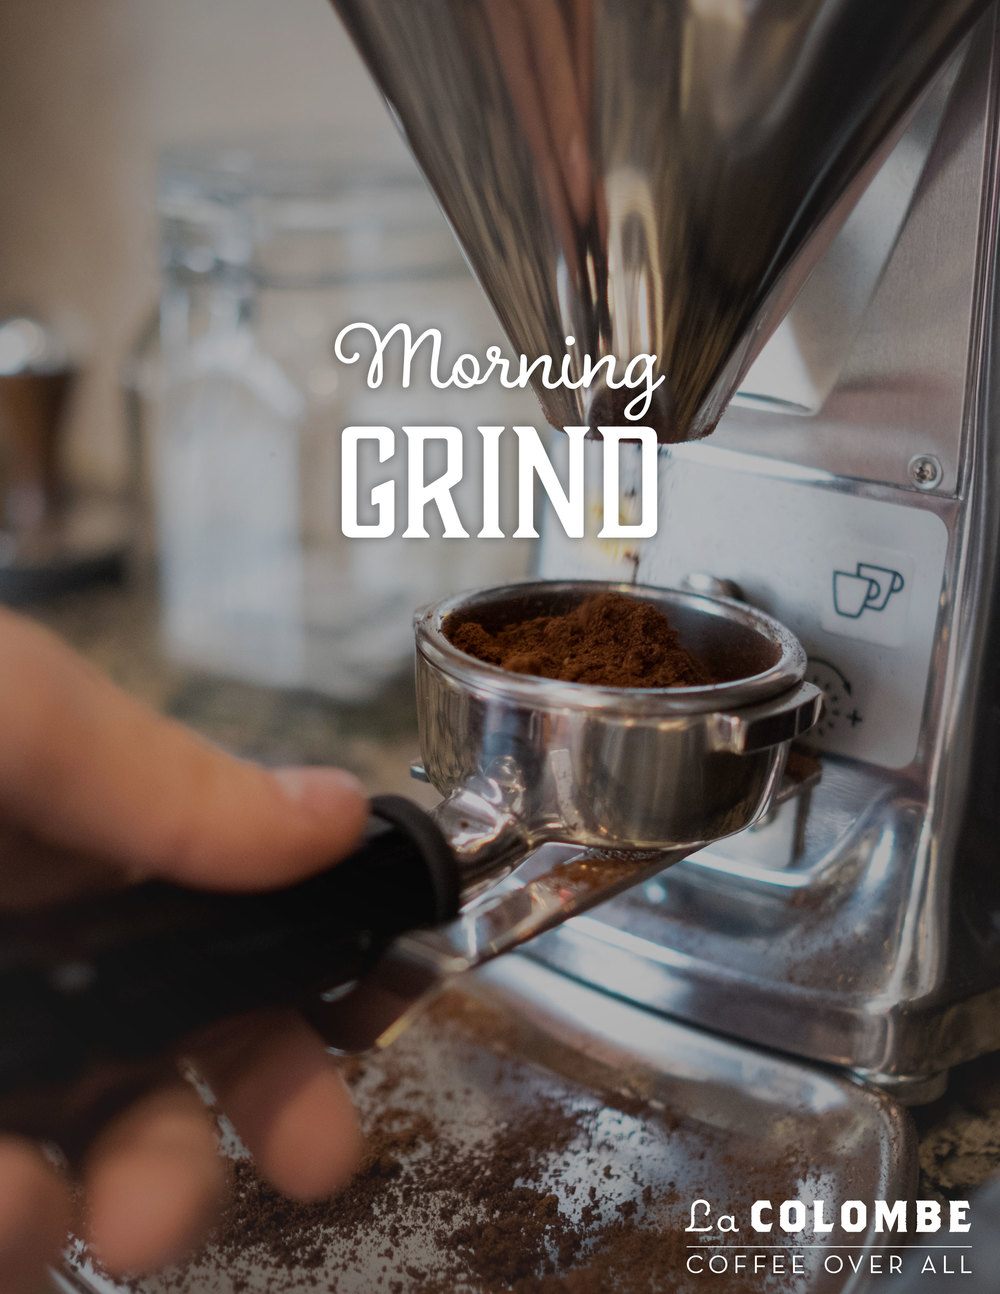 LAC_Print-MorningGrind-02.jpg